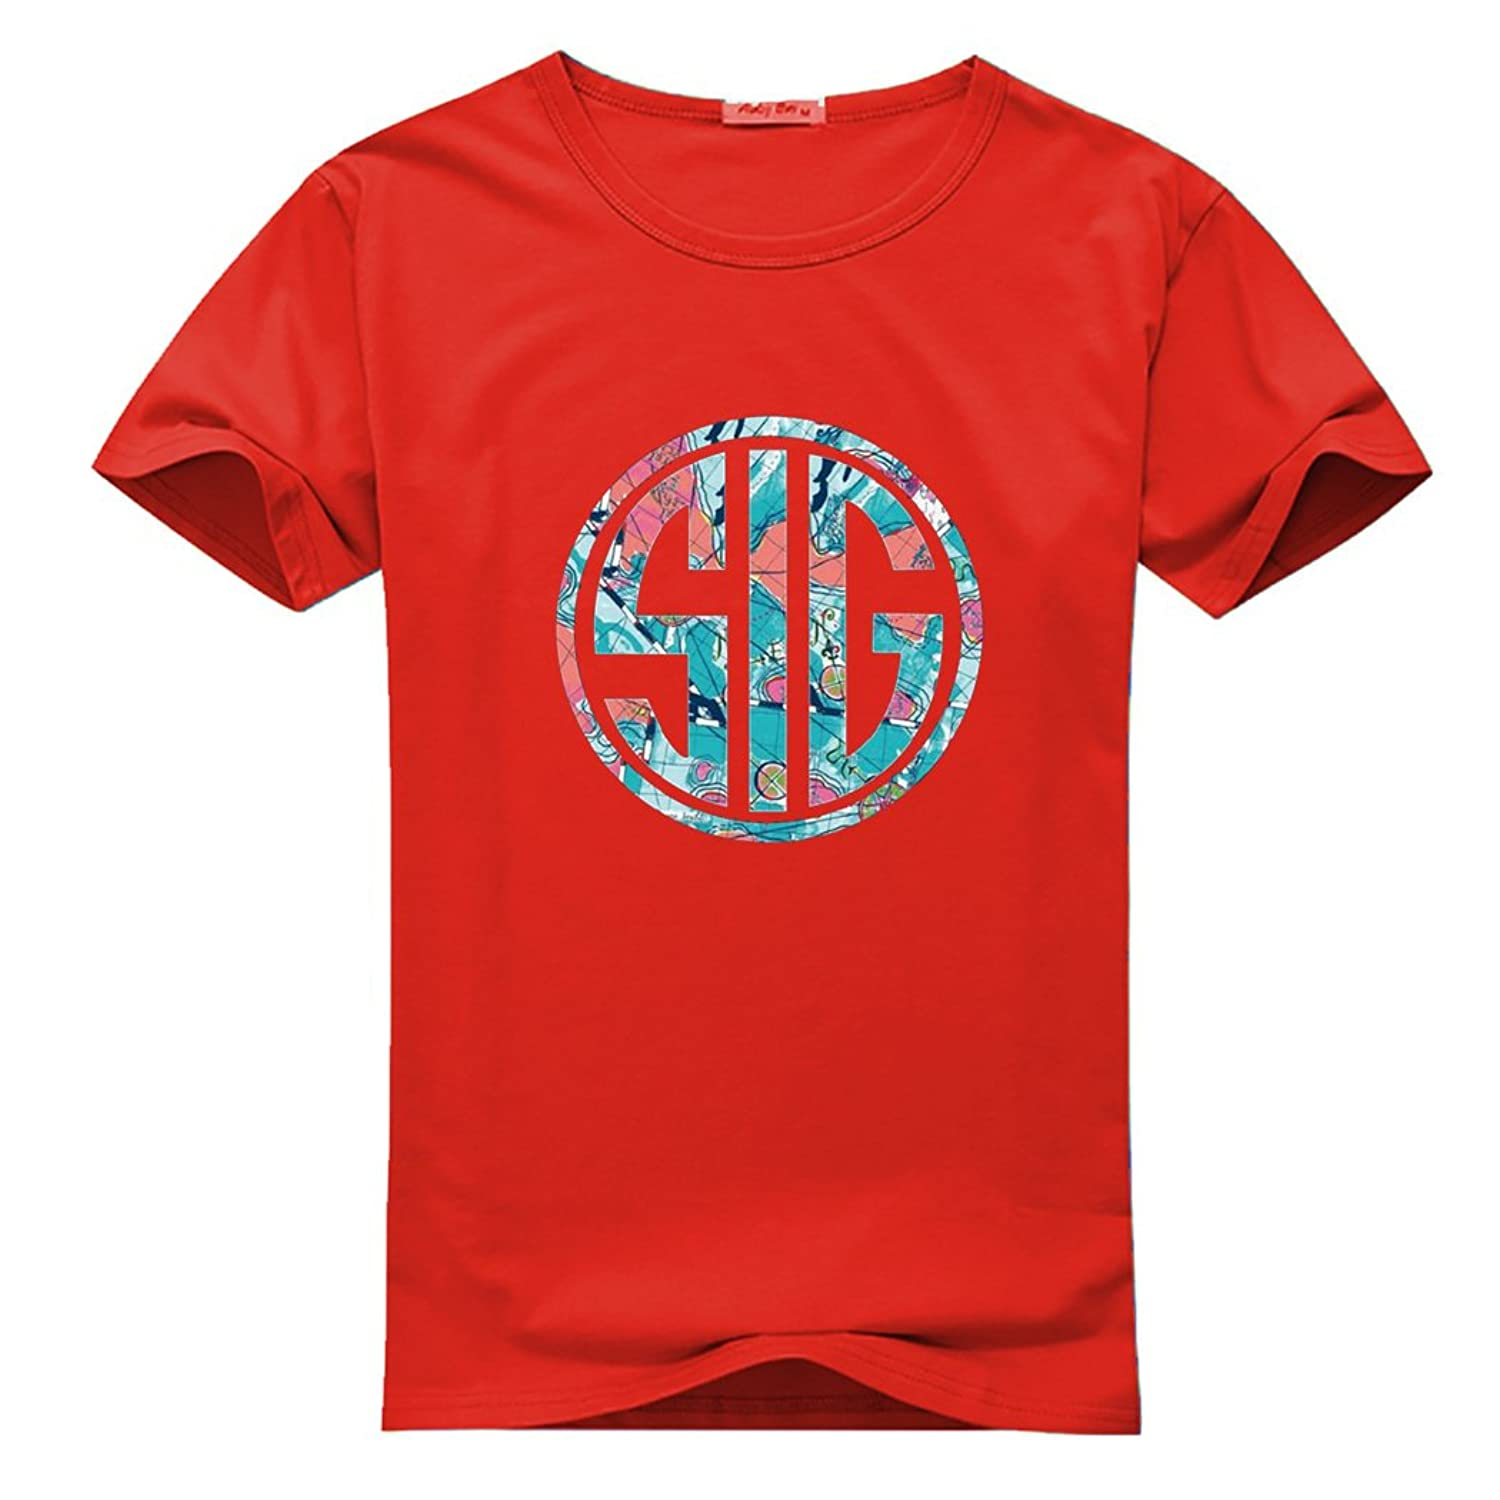 7253f0f0be Pixel graphic is printed on the front. Crew-neck design offers a  comfortable fit. Short sleeve